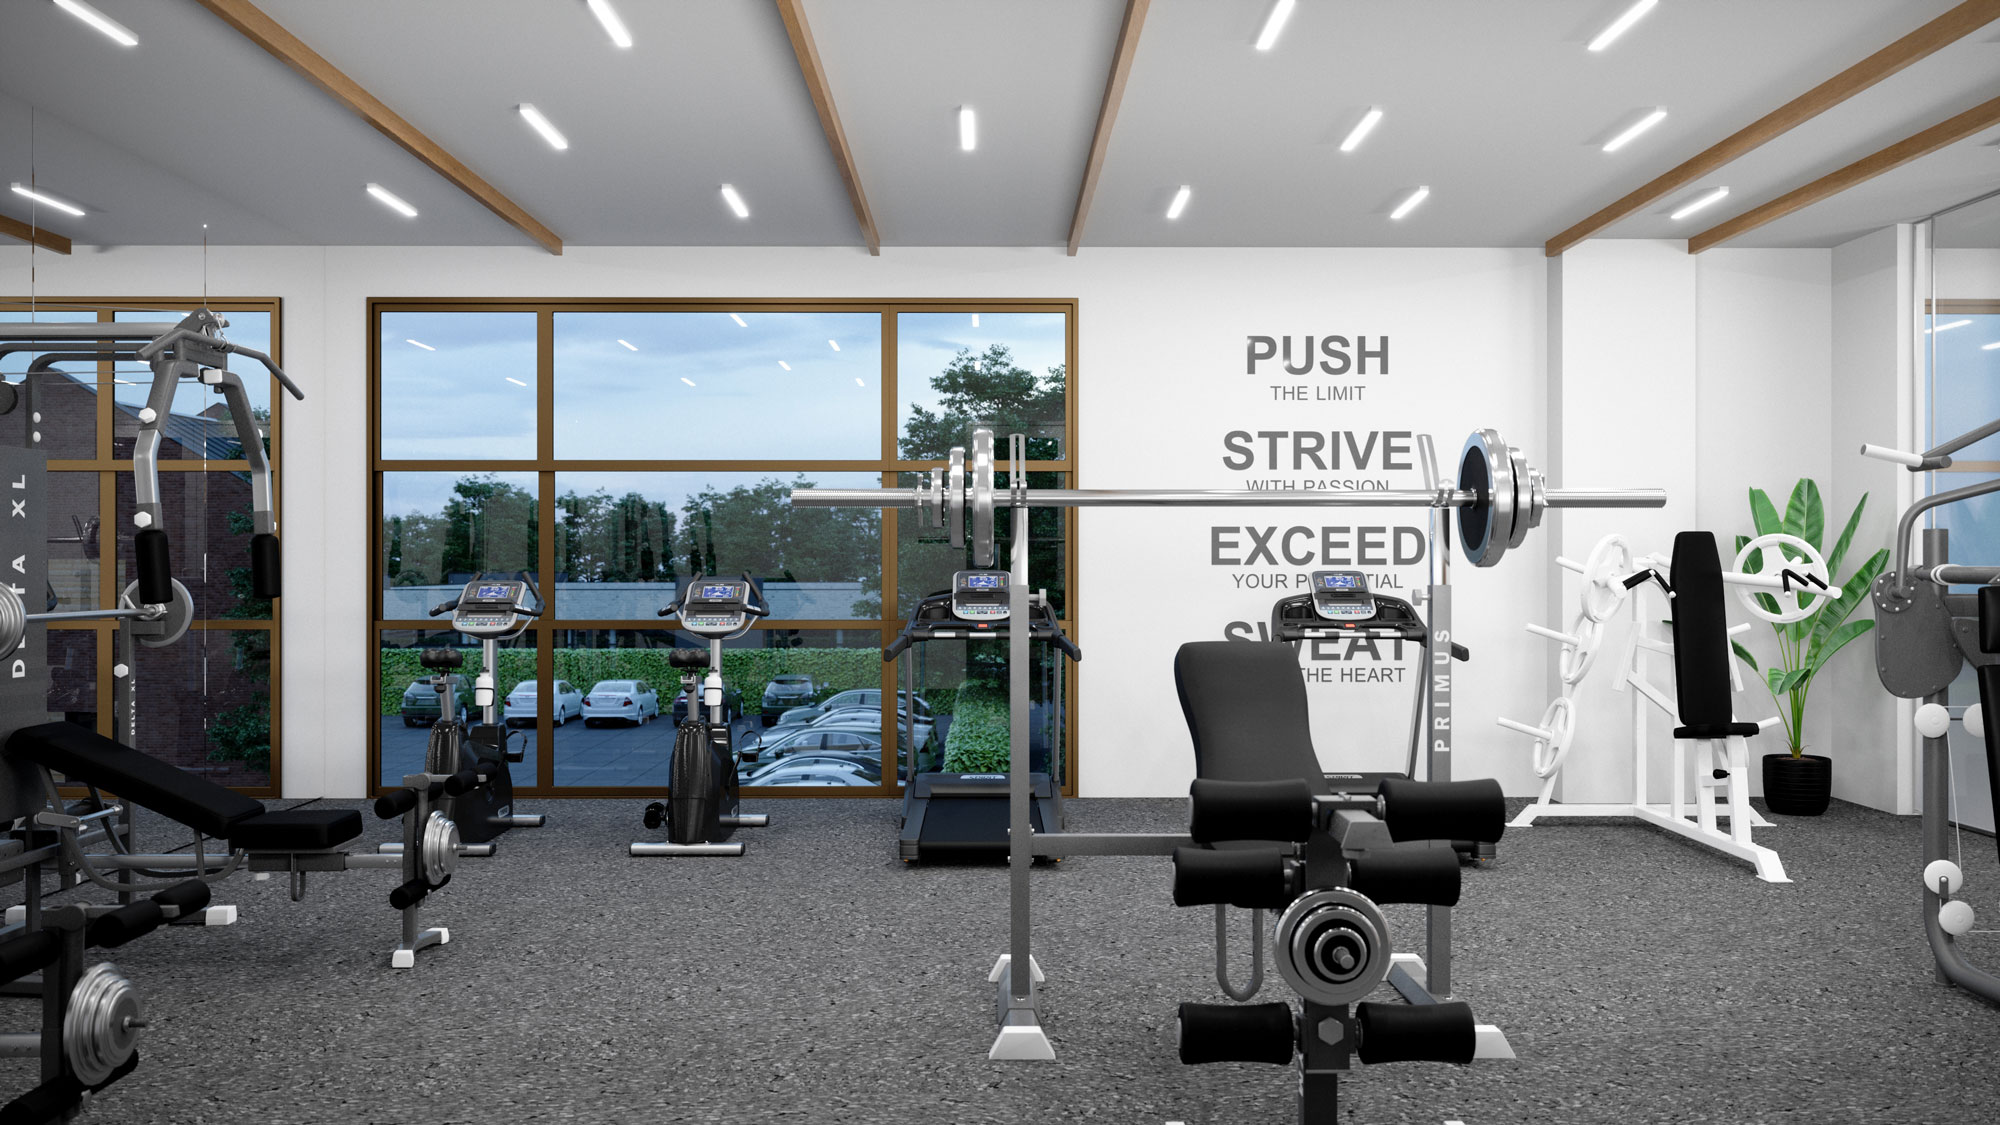 indoor gym area with lifting machines, workout machines, tvs, water fountain, and weights